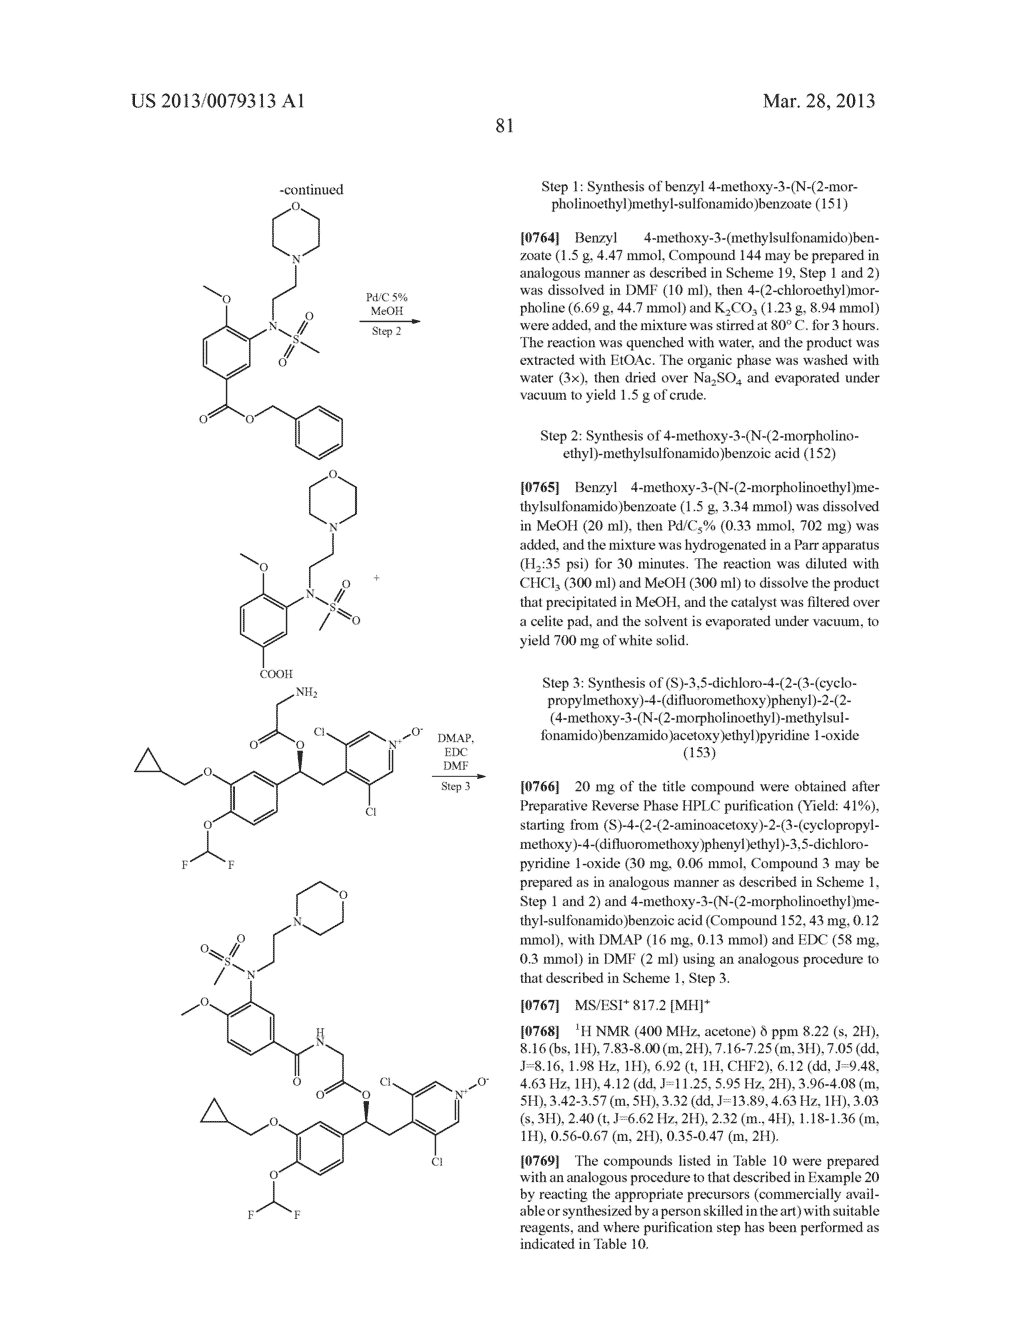 DERIVATIVES OF 1-PHENYL-2-PYRIDINYL ALKYL ALCOHOLS AS PHOSPHODIESTERASE     INHIBITORS - diagram, schematic, and image 82